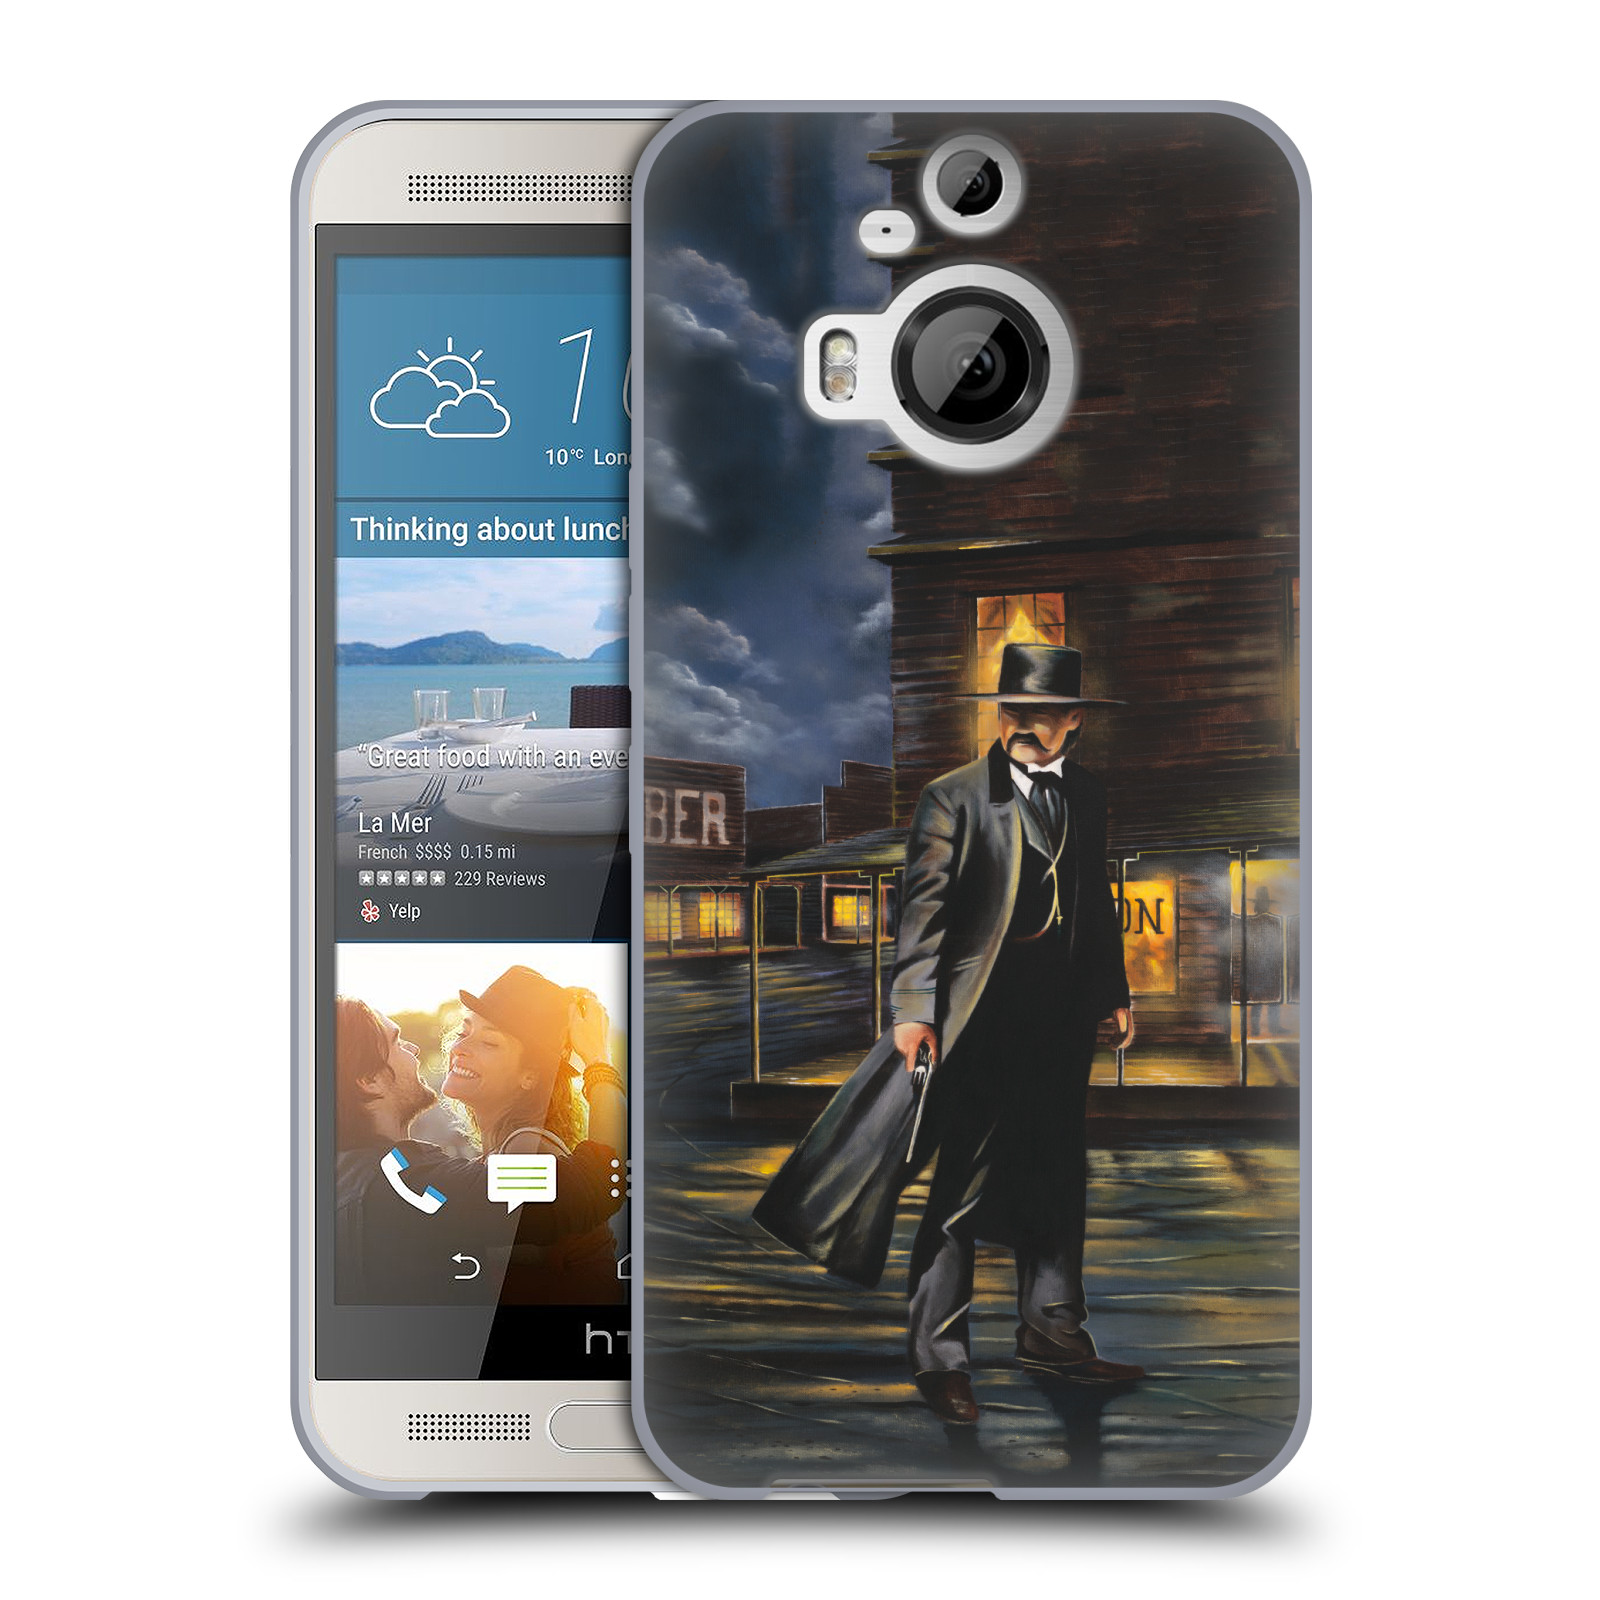 OFFICIAL-GENO-PEOPLES-ART-LIFE-SOFT-GEL-CASE-FOR-HTC-PHONES-2